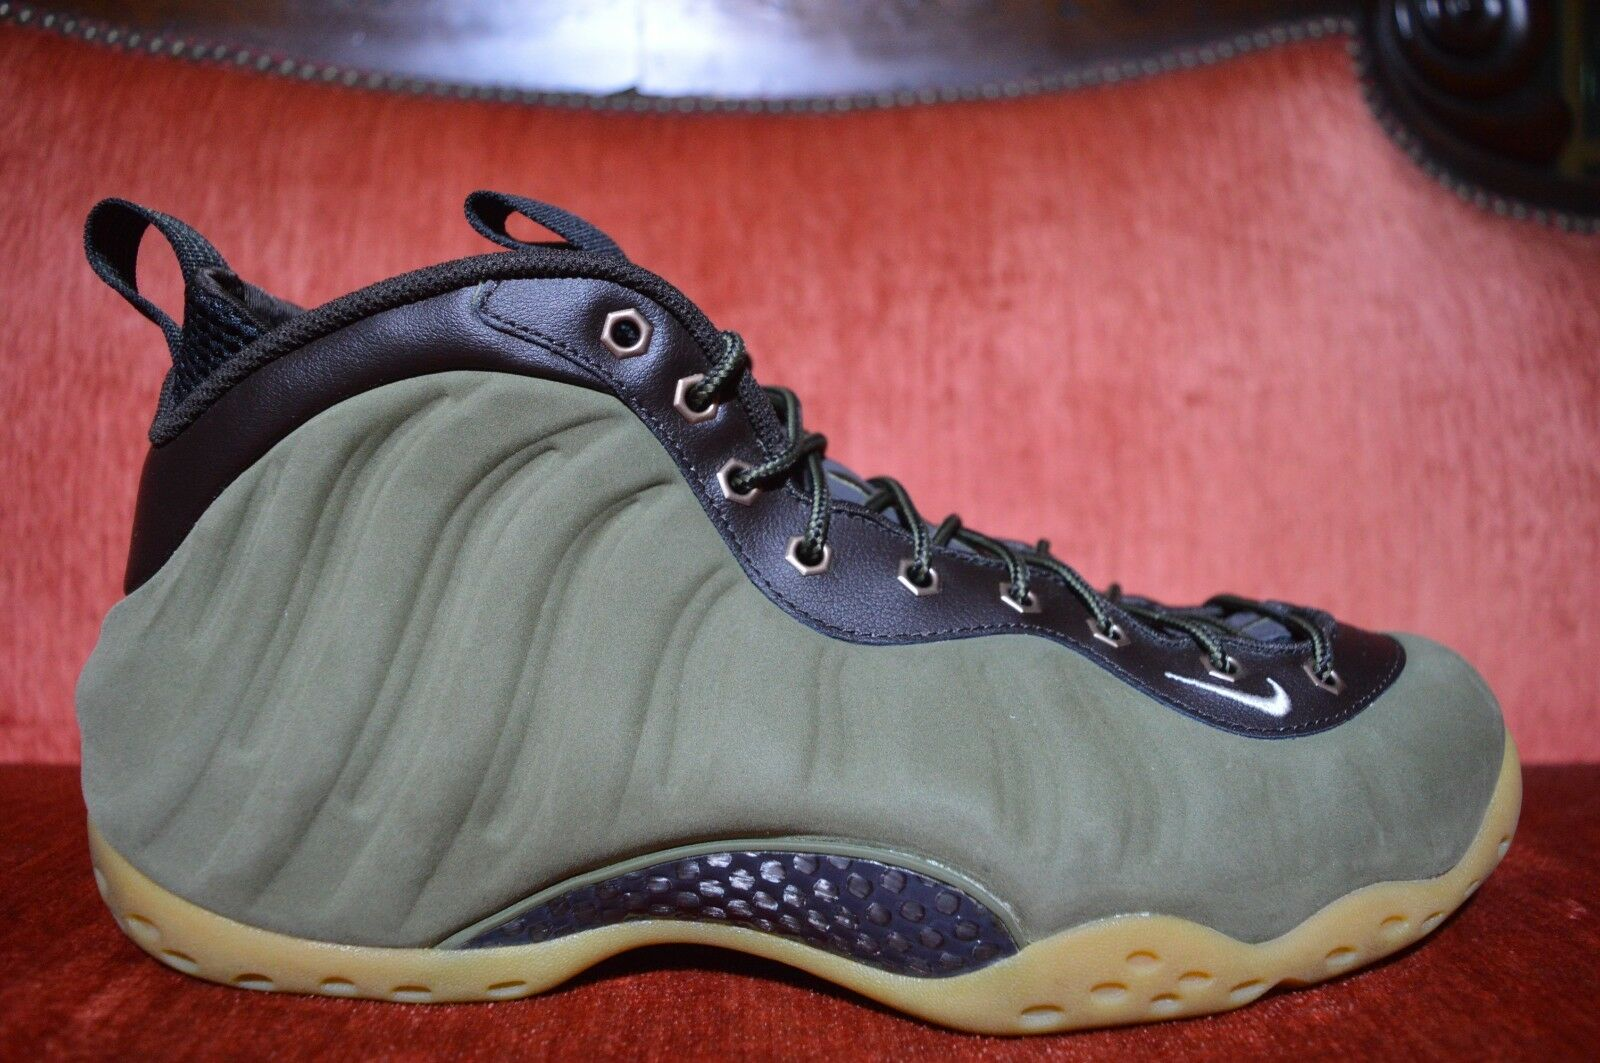 deac840f82 Worn 2x Nike Air Foamposite One Olive 575420-200 12 Suede Wheat All ...